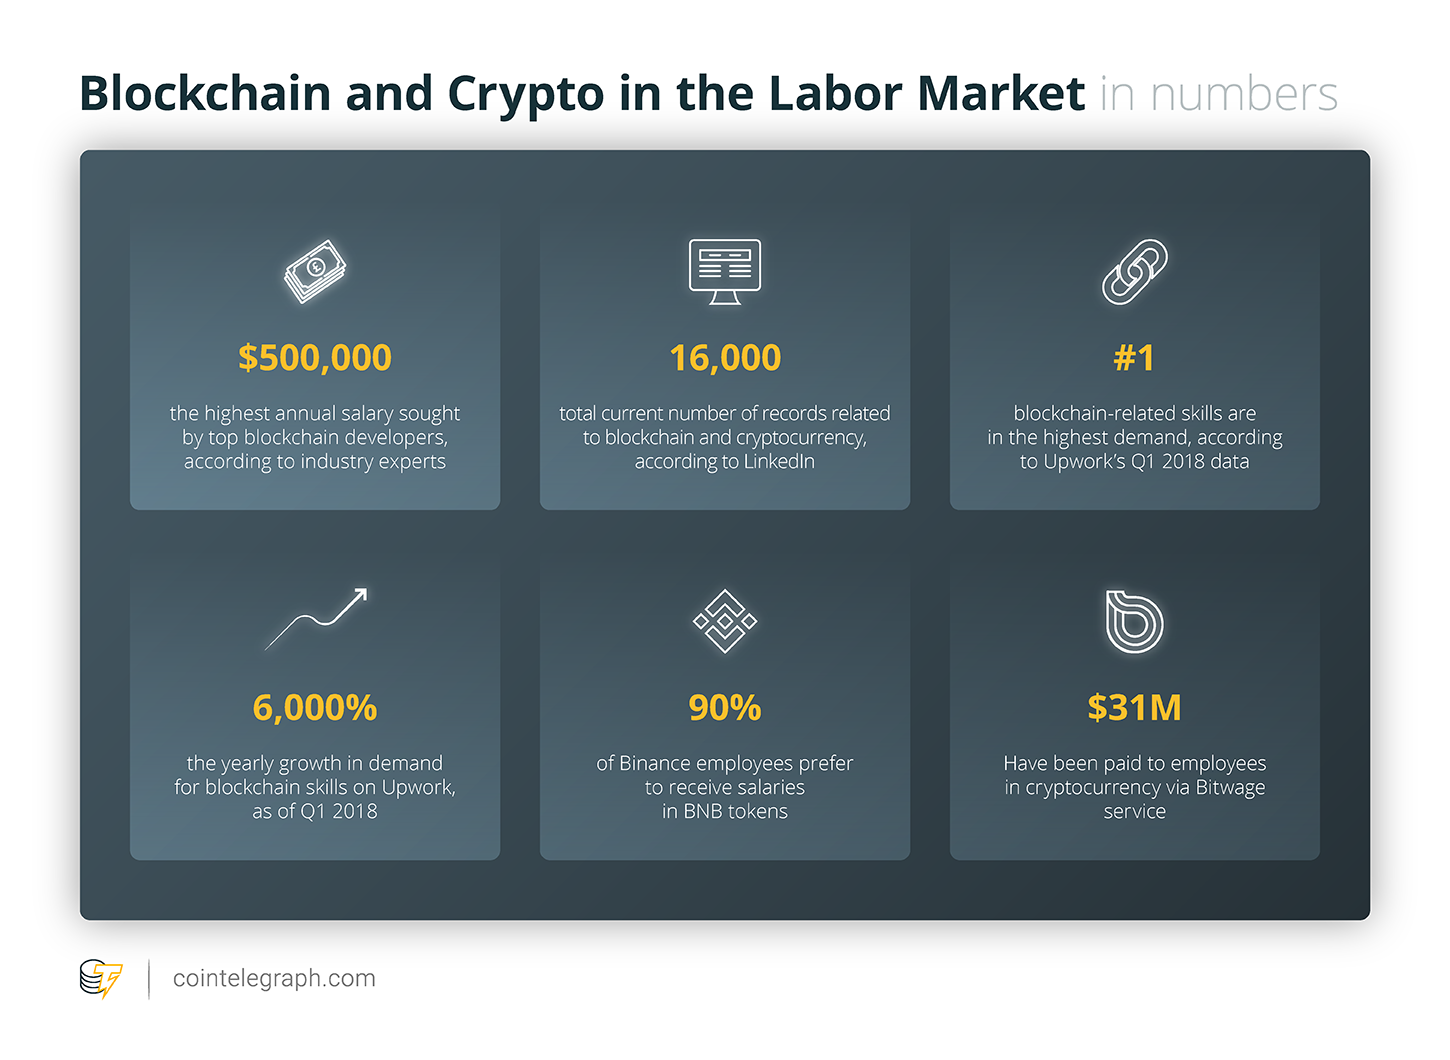 Blockchain and Crypto in the Labor Market: Overview of